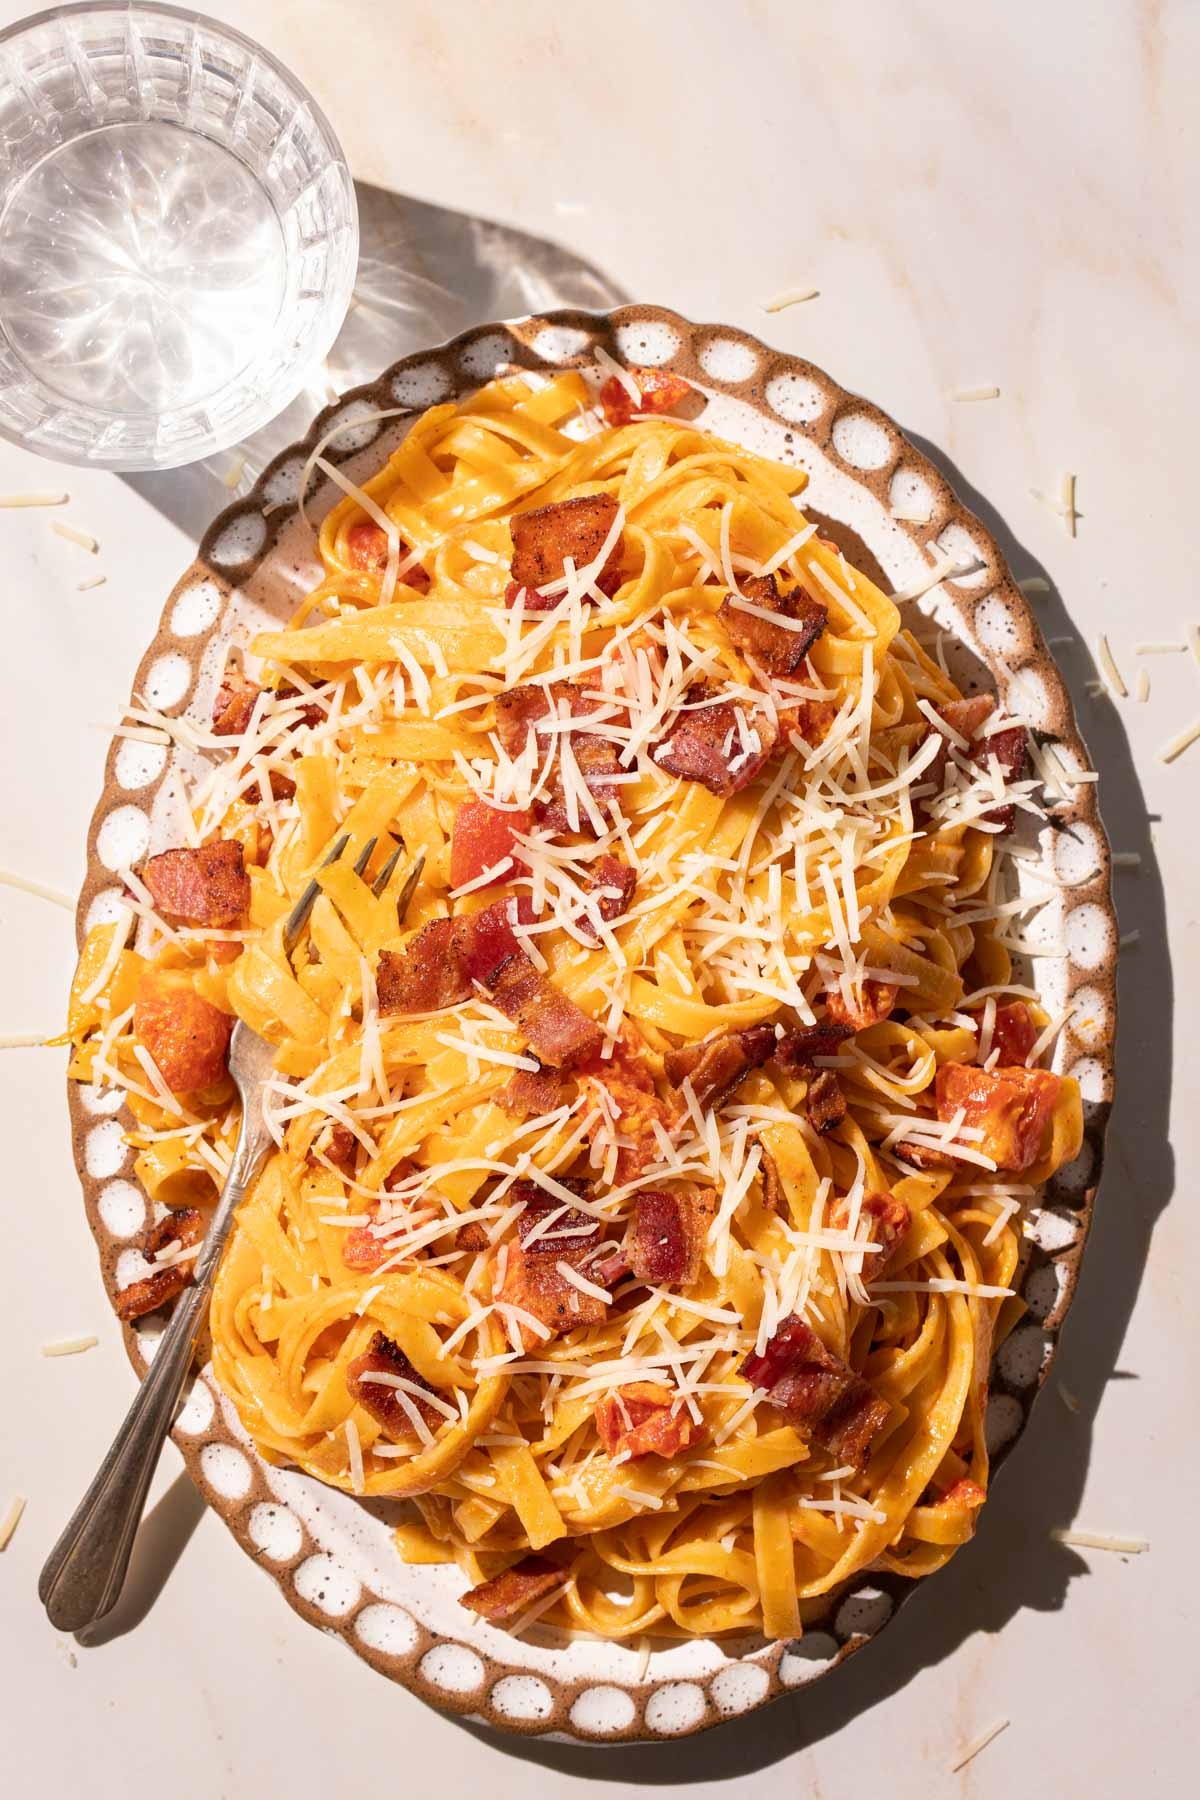 Pasta with bacon and tomatoes on an oval plate